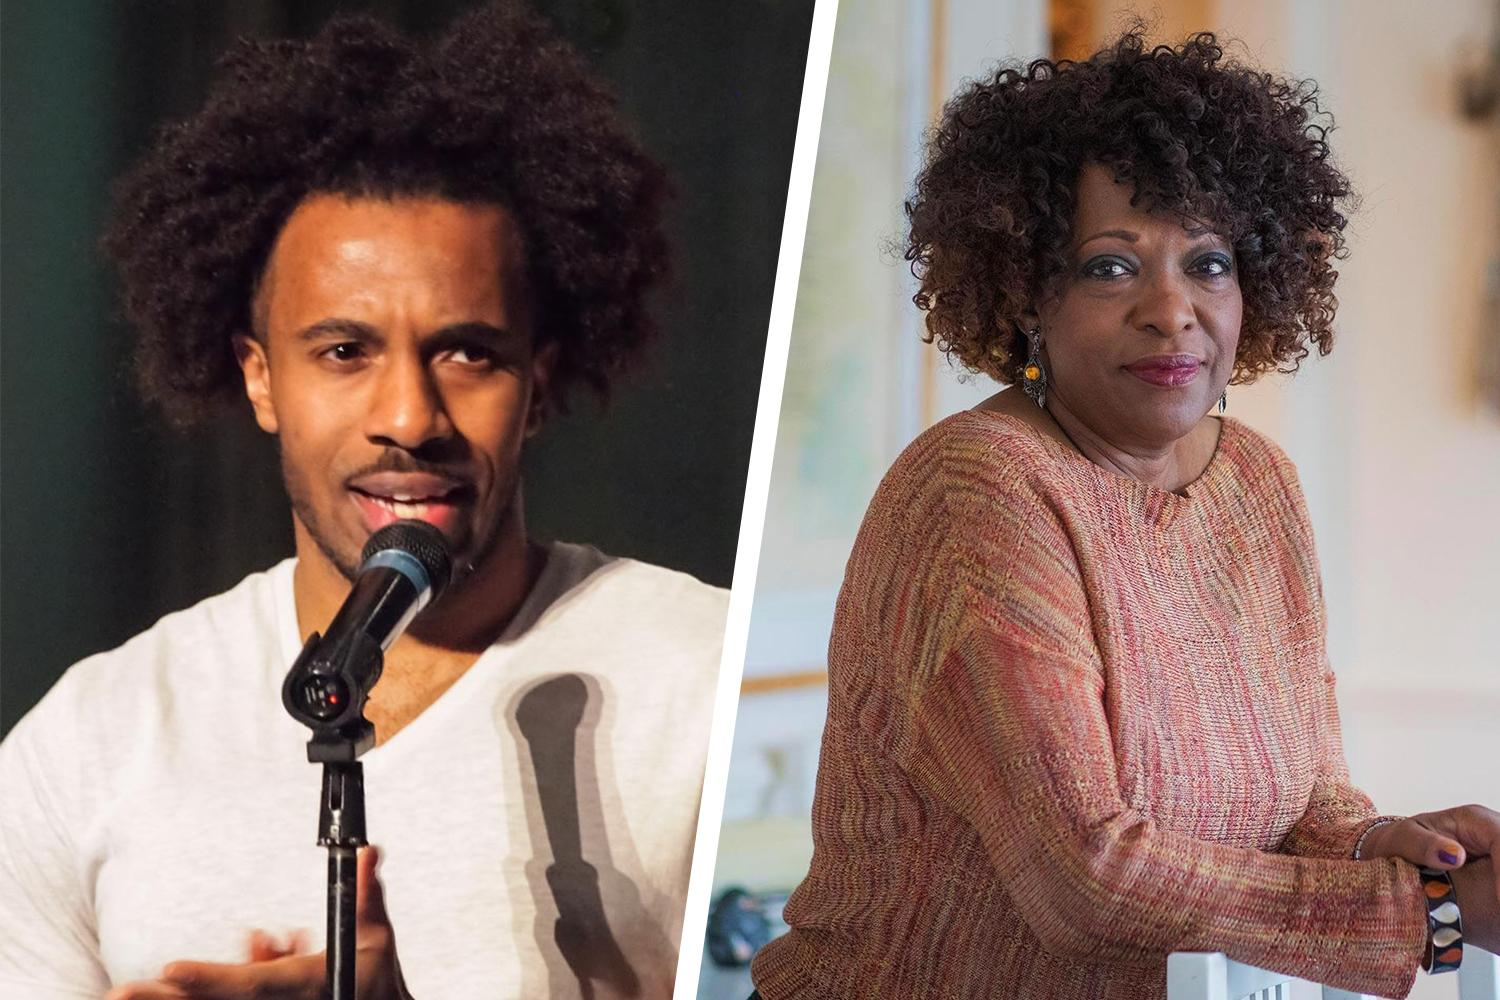 UVA faculty, including poetry professor Rita Dove (right) modeled an ambitious intellectual life for this former student, Kyle Dargan. (Photos courtesy of Kyle Dargan and Sanjay Suchak)